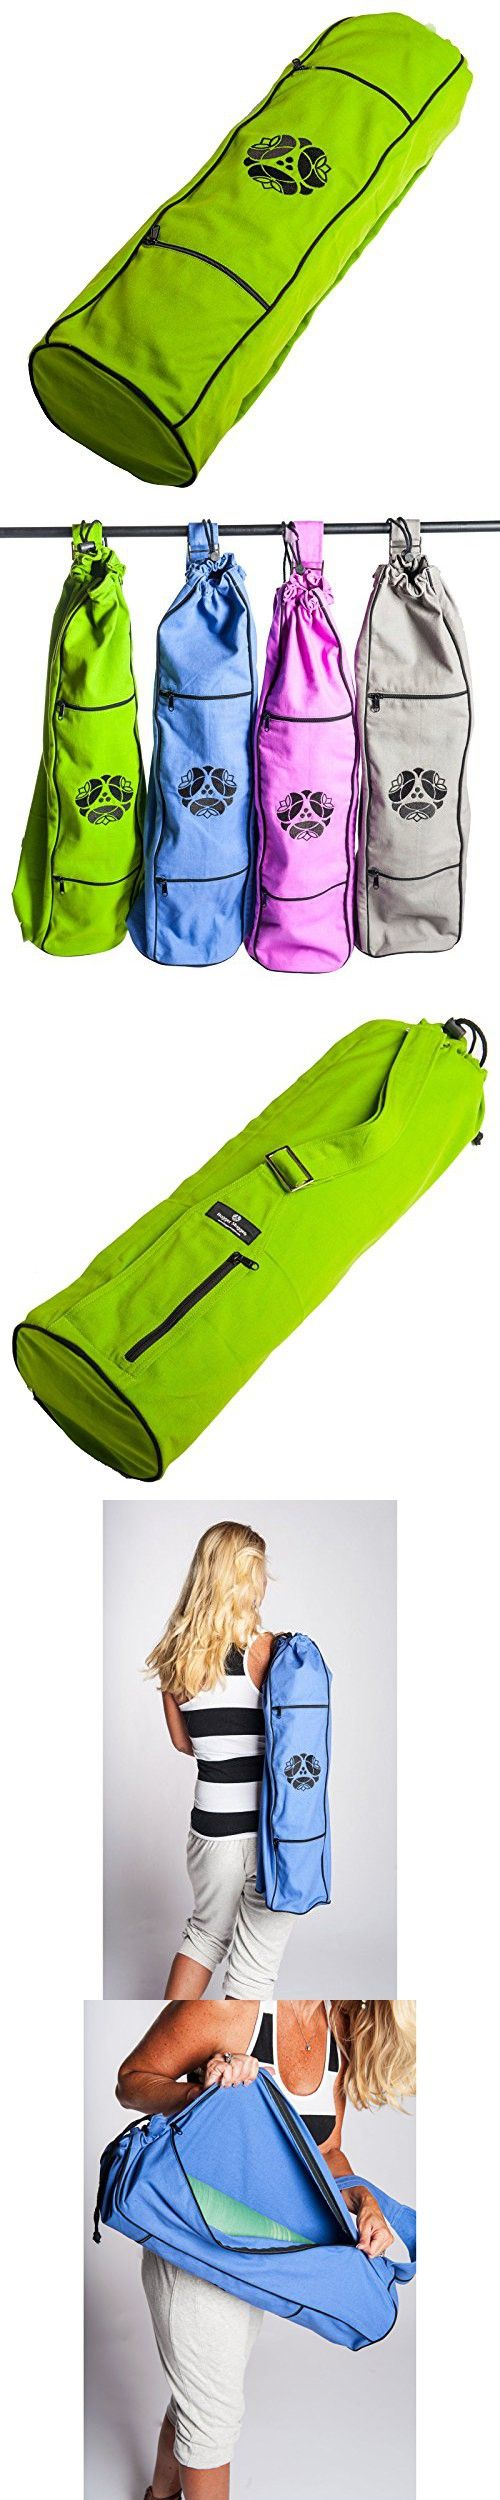 Hugger Mugger My Yoga Bag, Lime/Green